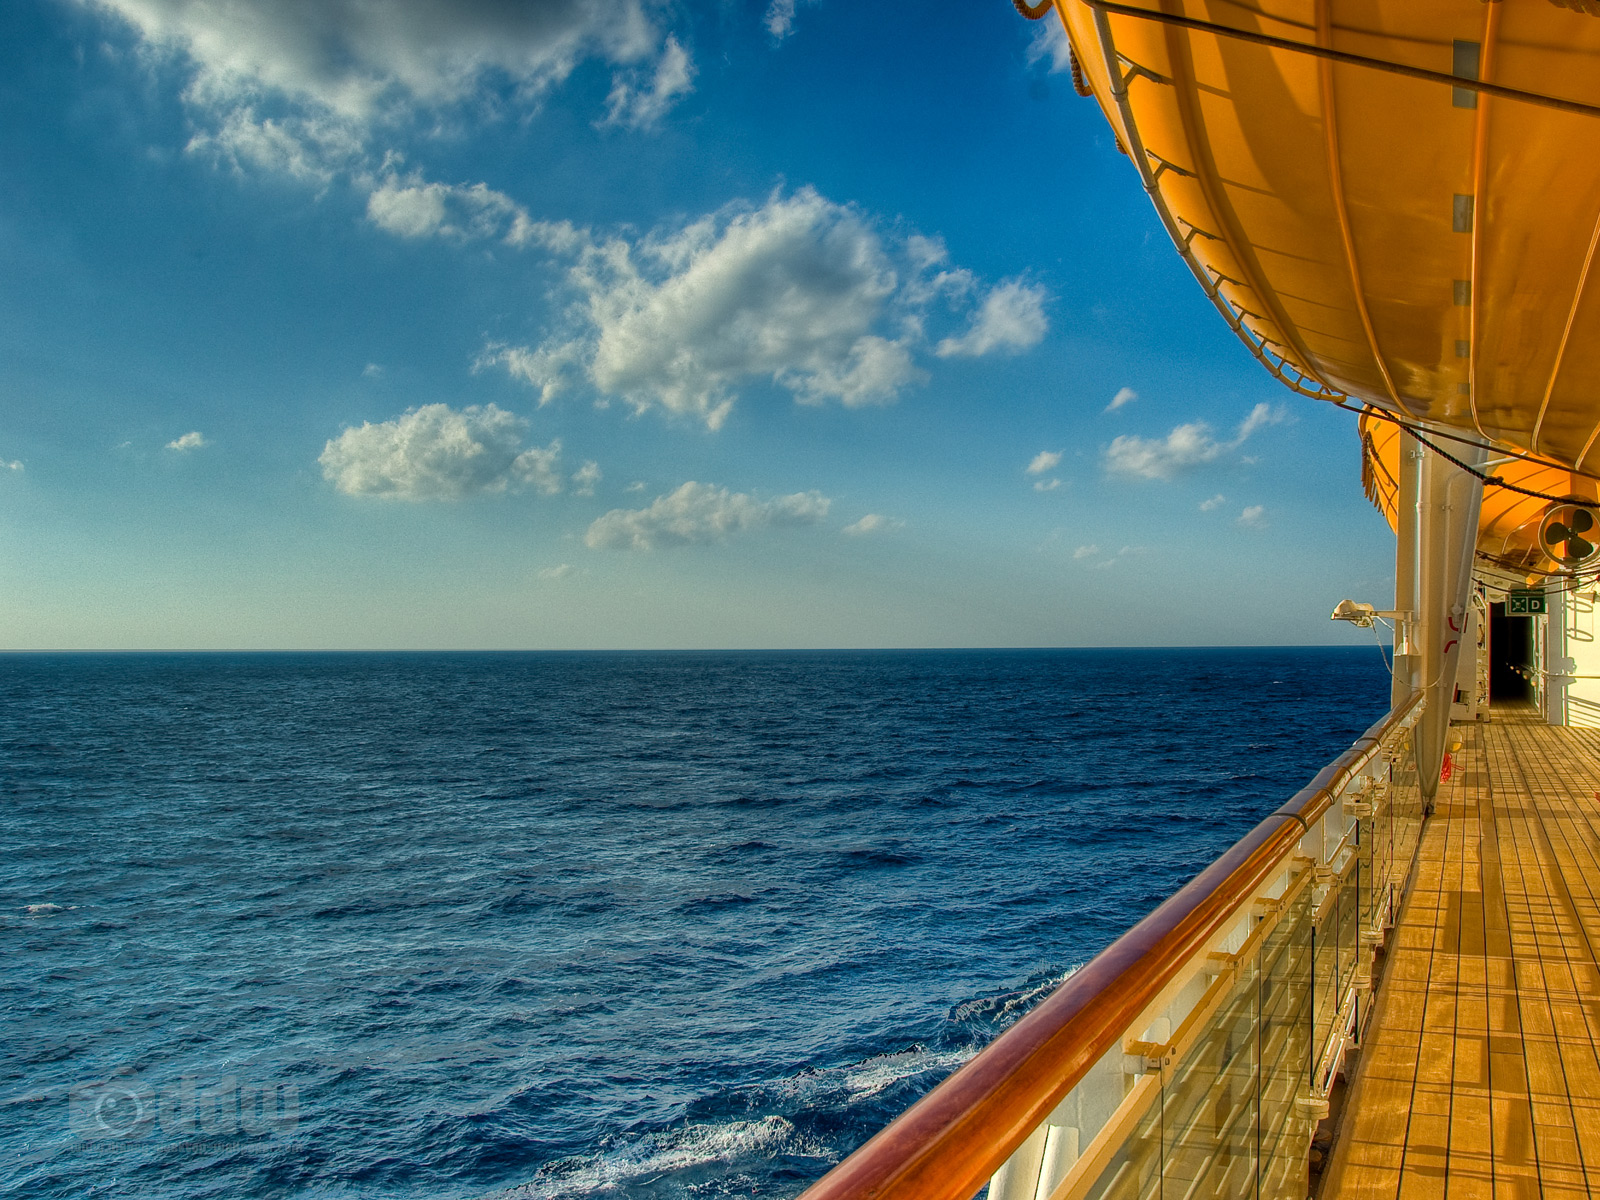 Disney Cruise Deck Desktop Wallpaper 1600 x 1200 1600x1200